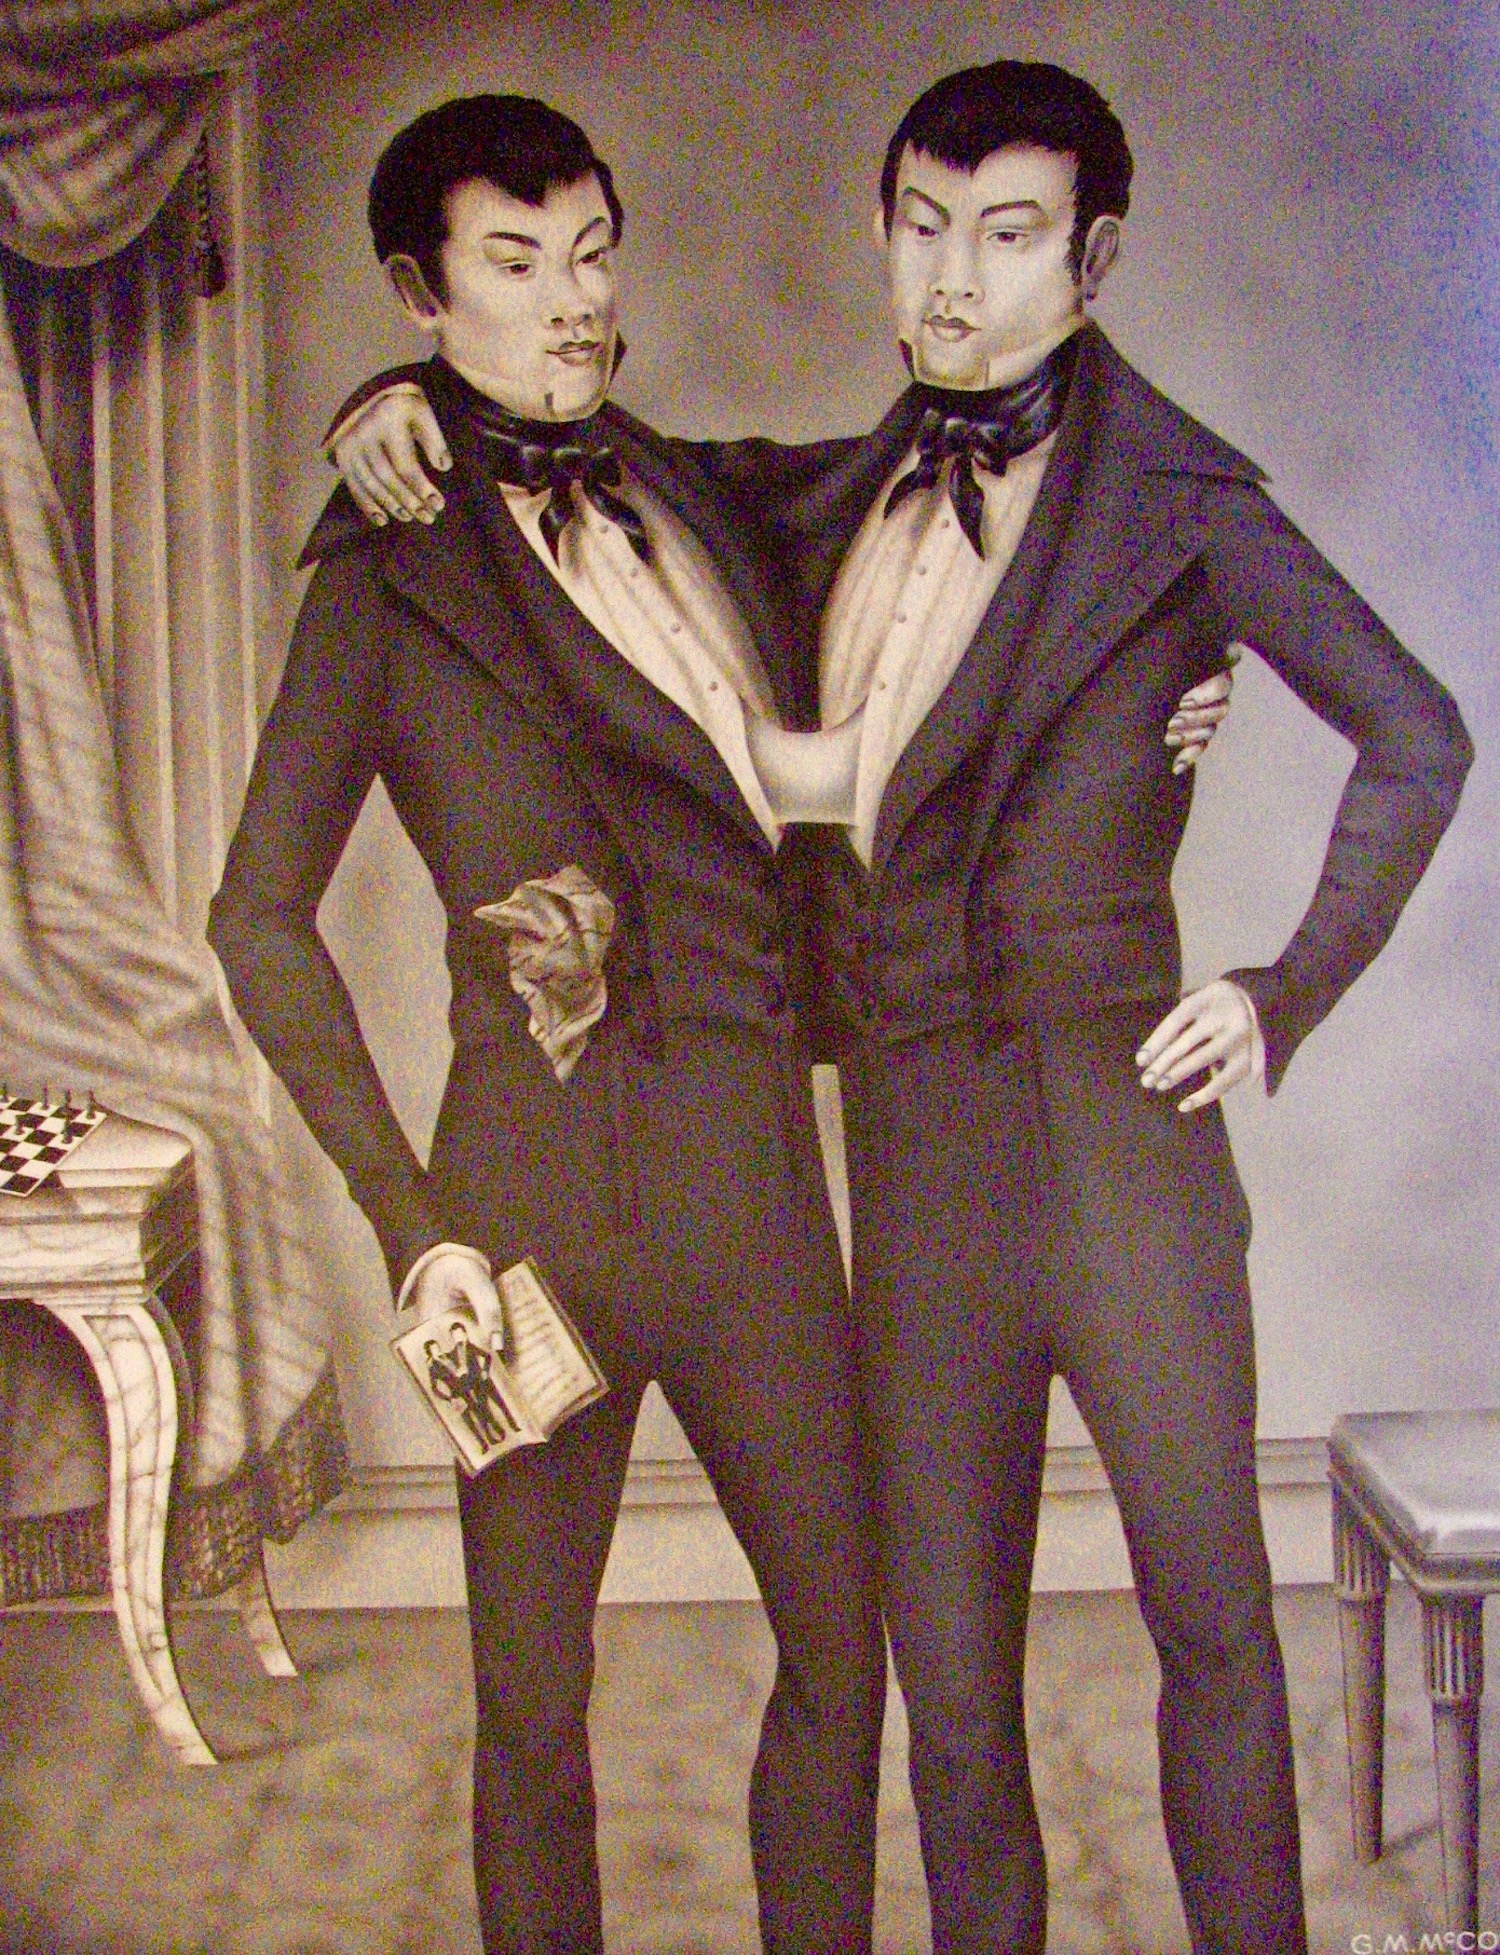 Things to do in Mount Airy NC includes learning the history of the original Siamese twins.